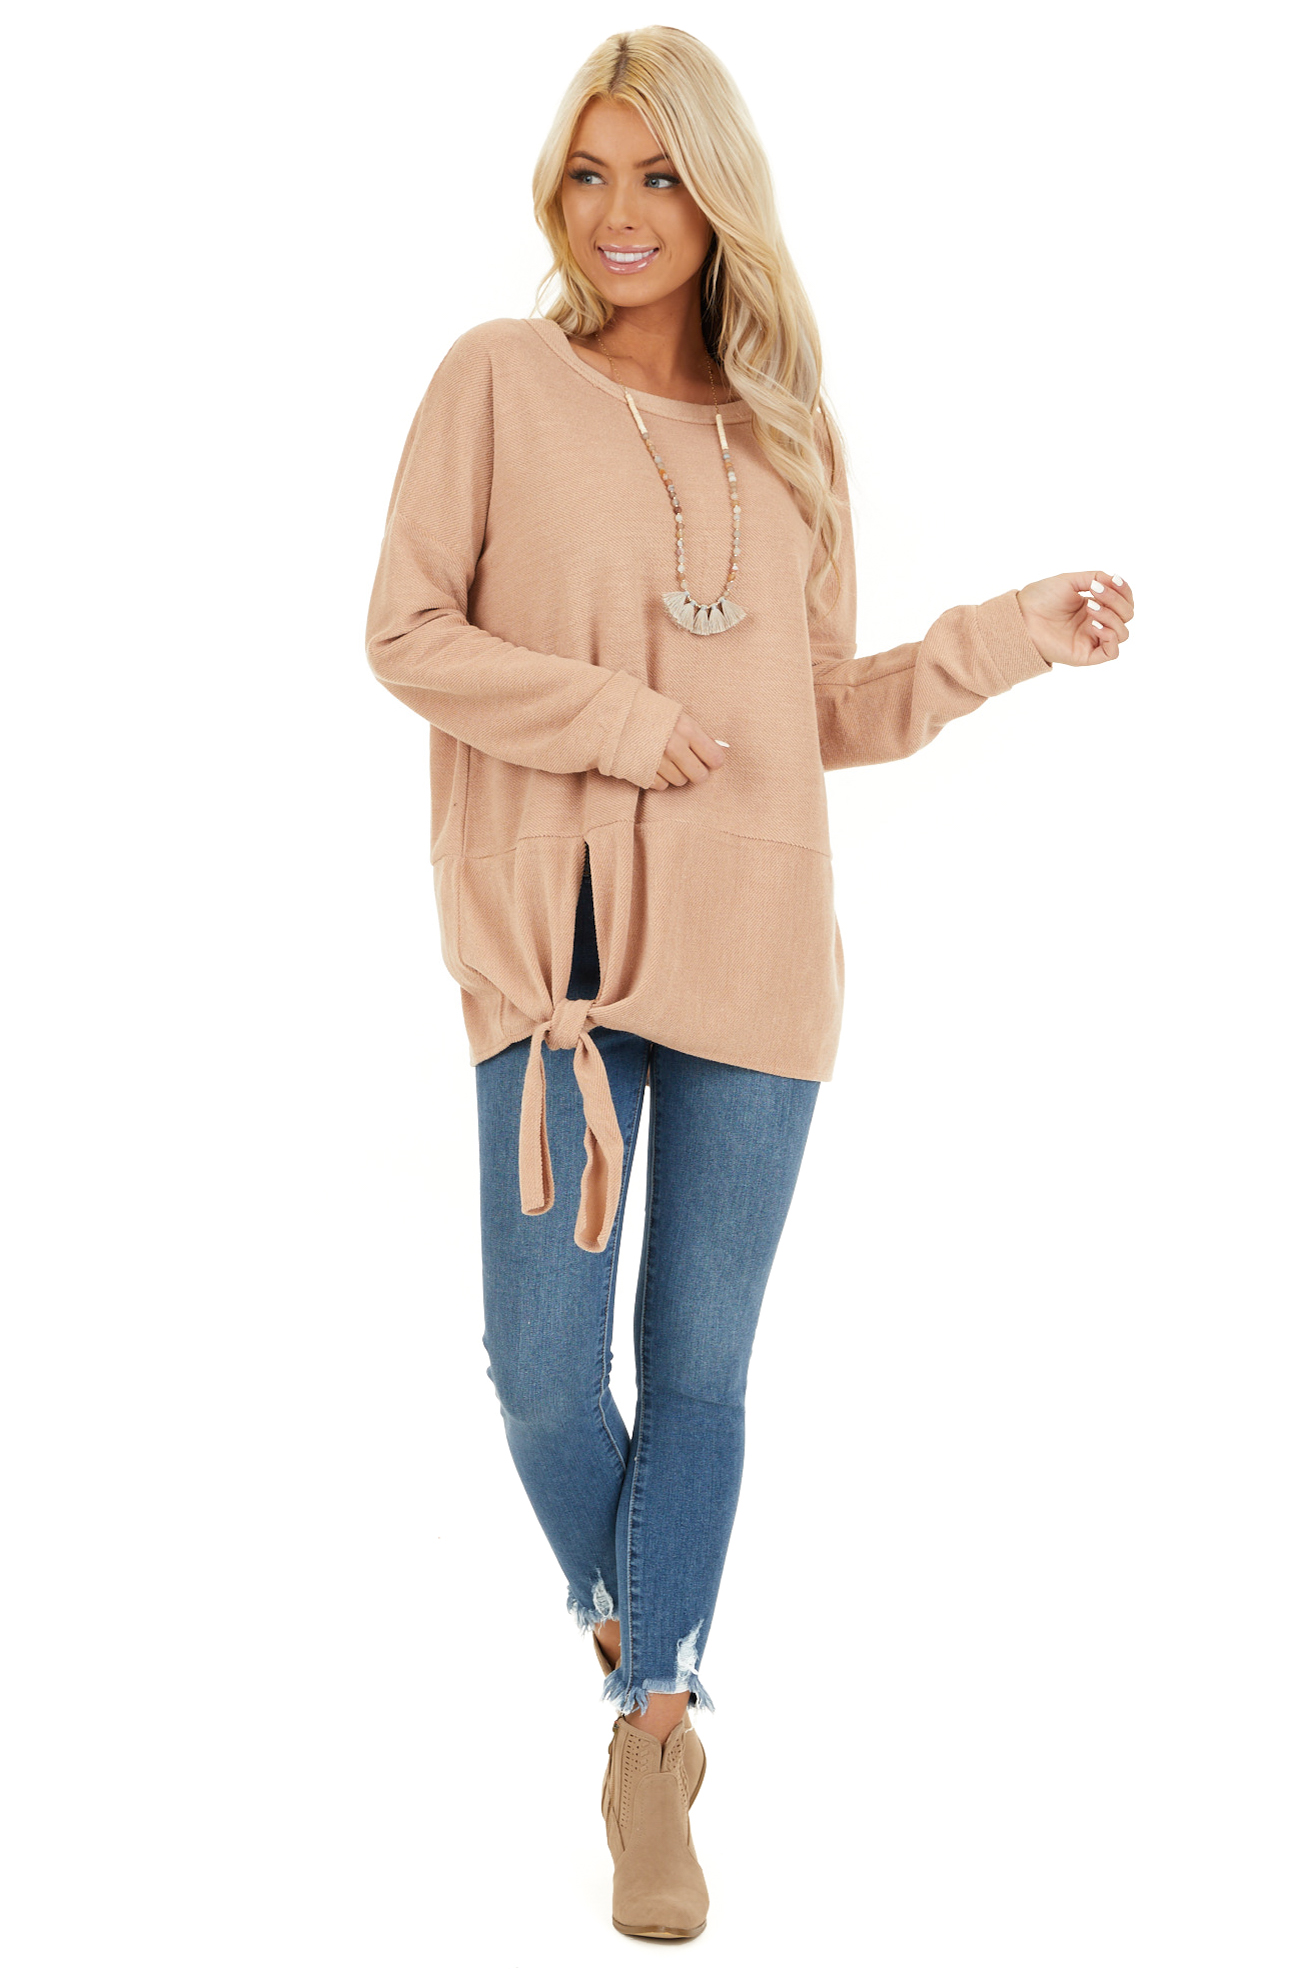 Camel Super Soft Long Sleeve Knit Top with Front Tie front full body